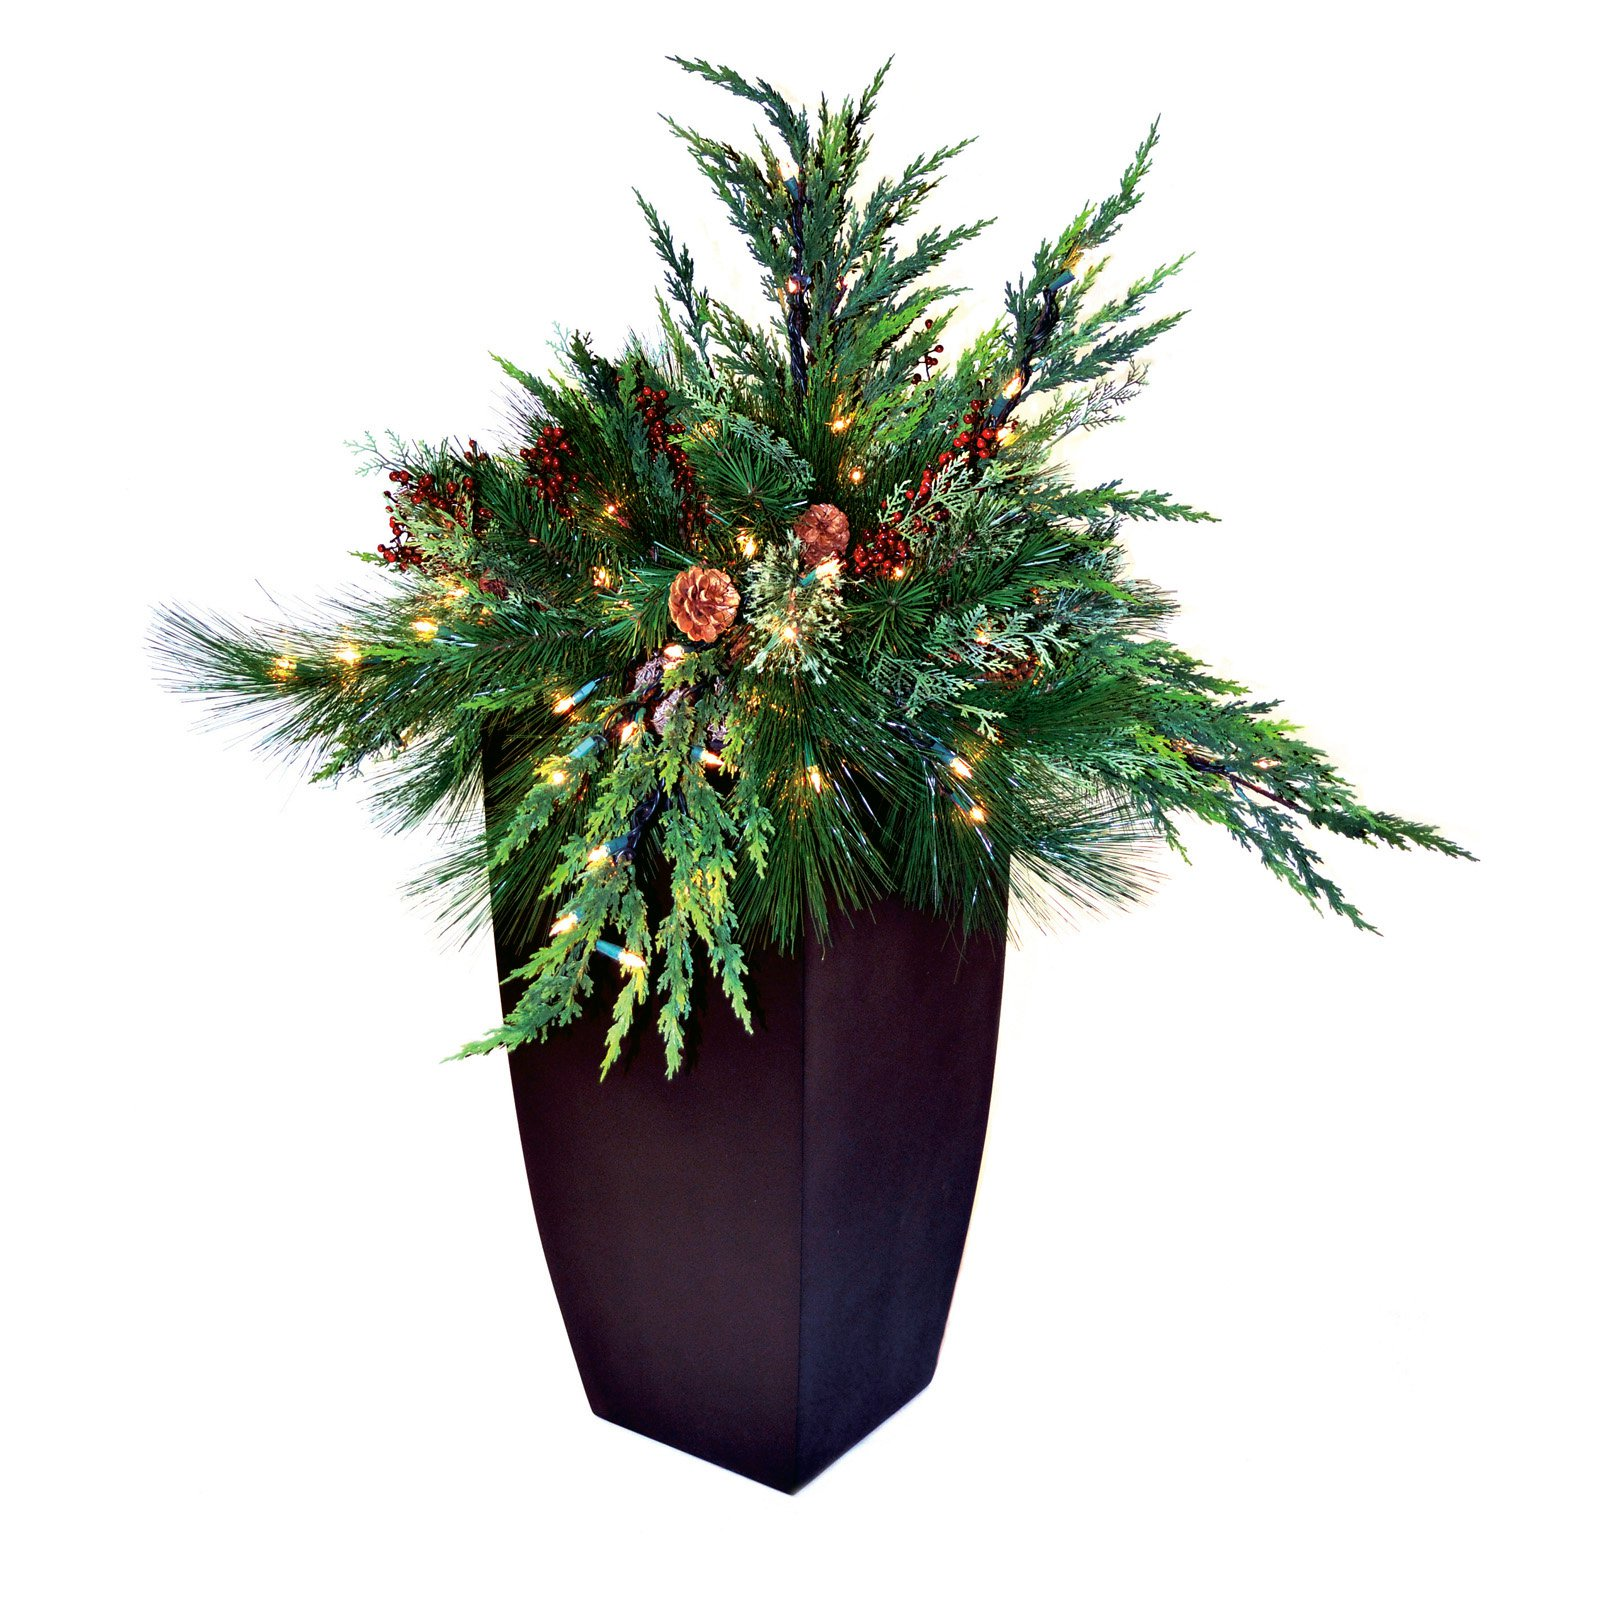 30 in. White Pine Pre-lit LED Arrangement with Container - Battery Operated